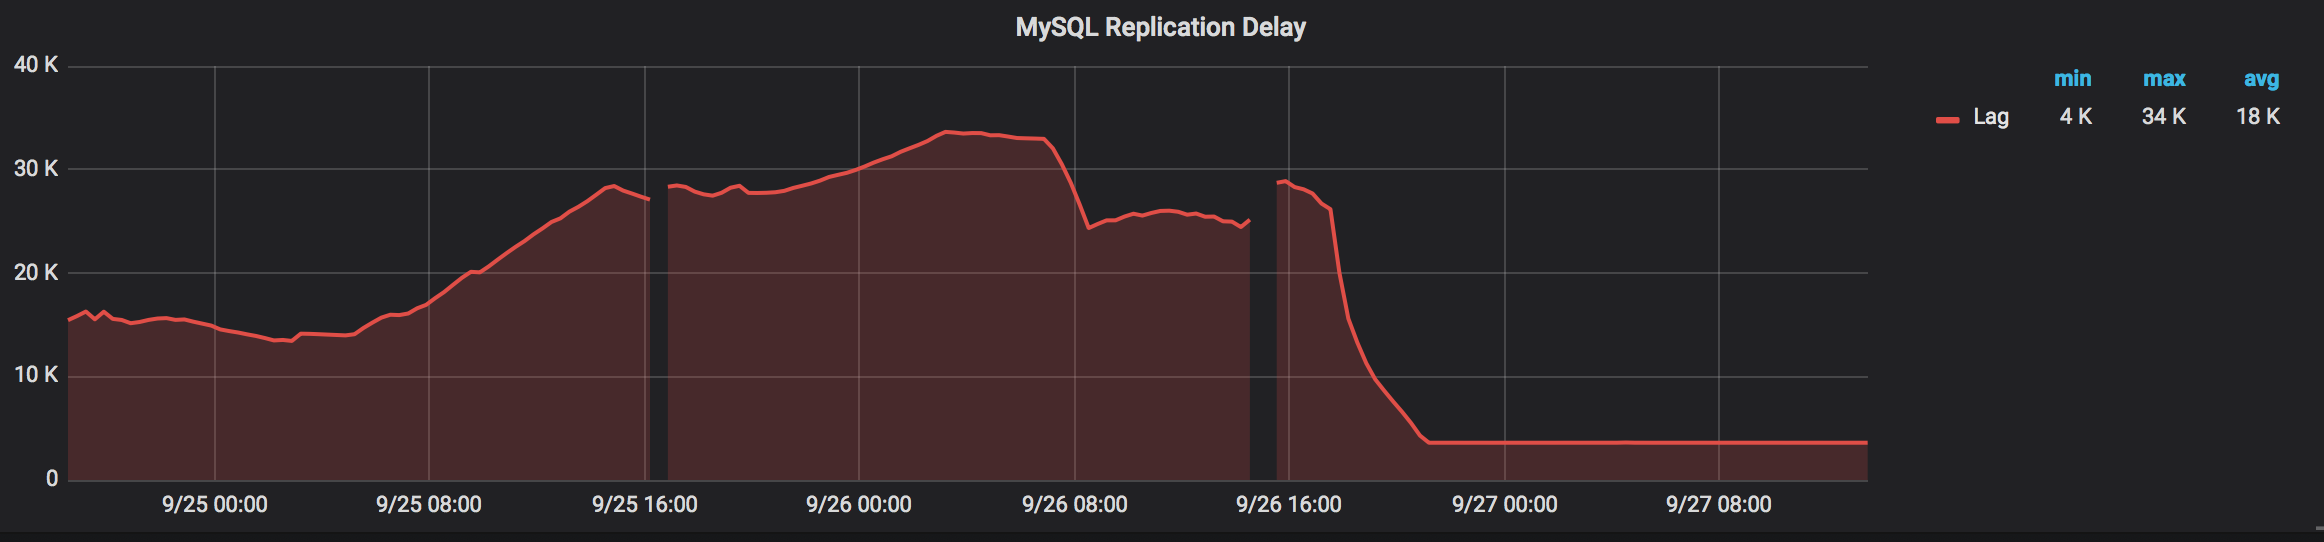 MySQL Replication Delay graph from PMM